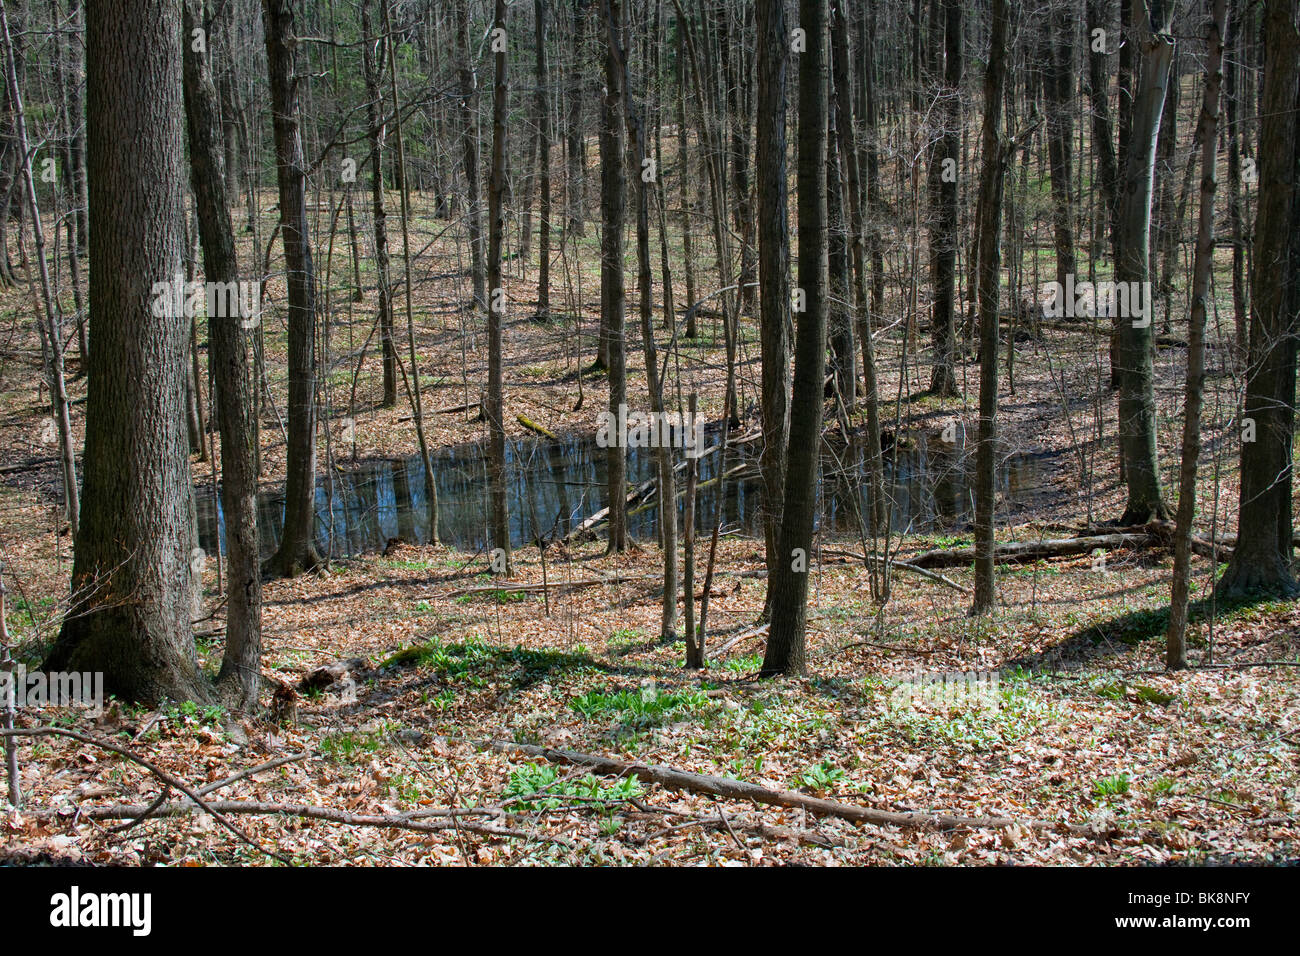 Vernal pond Eastern Deciduous forest early Spring E USA by Dembinsky Photo Assoc - Stock Image